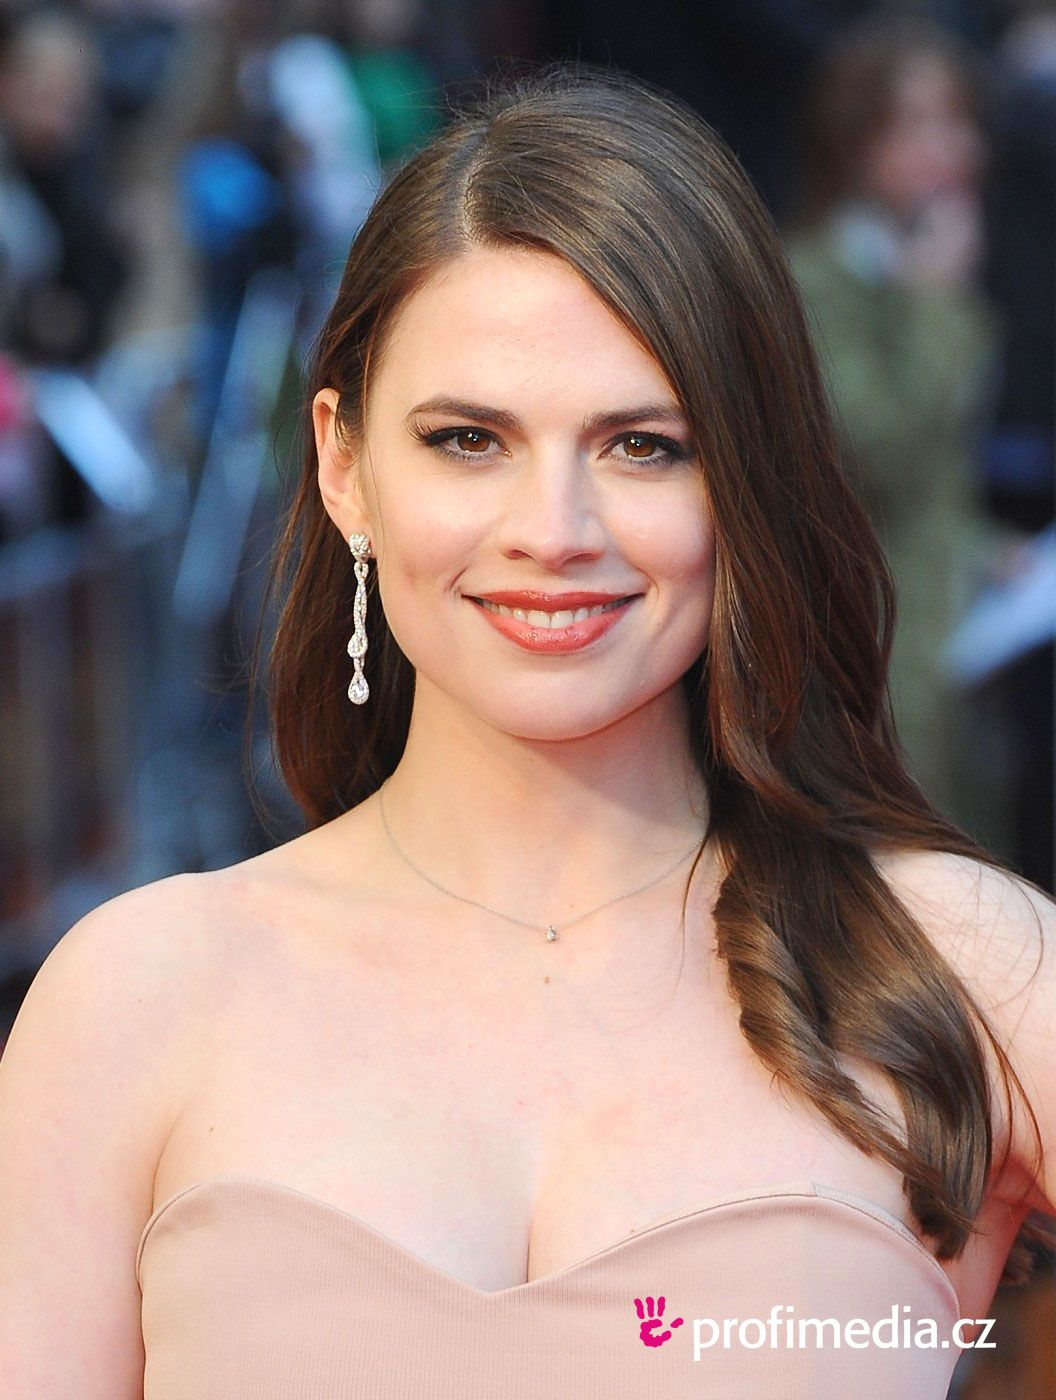 Young Hayley Atwell nudes (99 photo), Tits, Paparazzi, Boobs, lingerie 2006